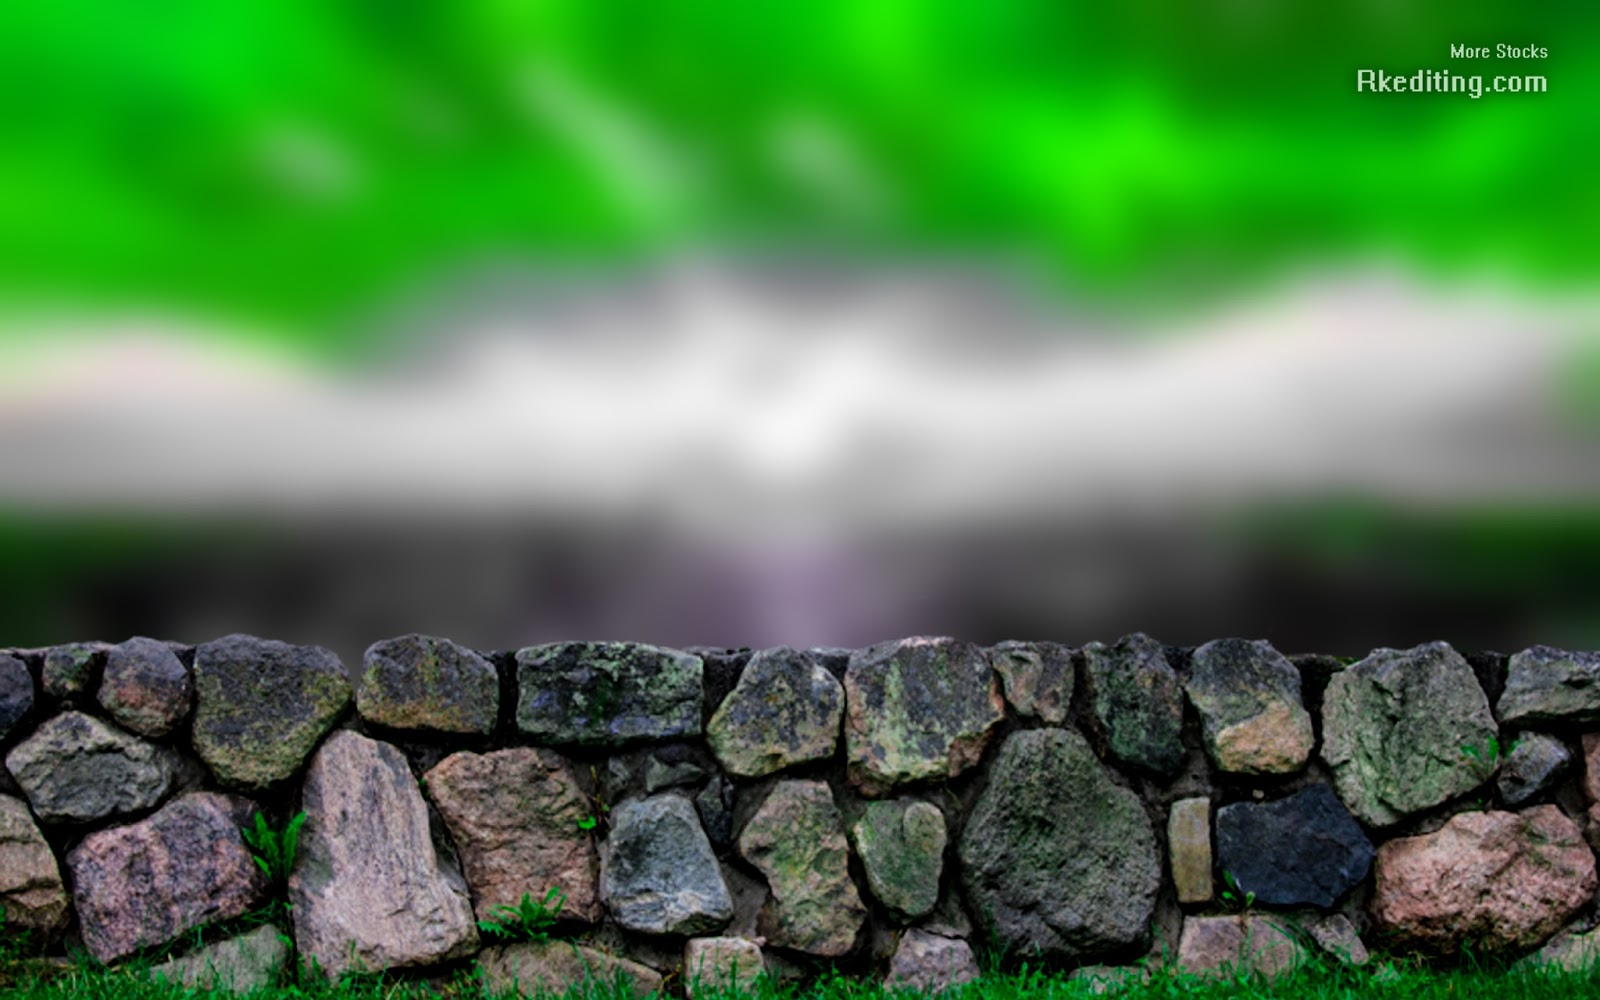 Hd Backgrounds For Photo Editing: 2018- New Hd Cb Backgrounds, Photoshop And PicsArt Editing